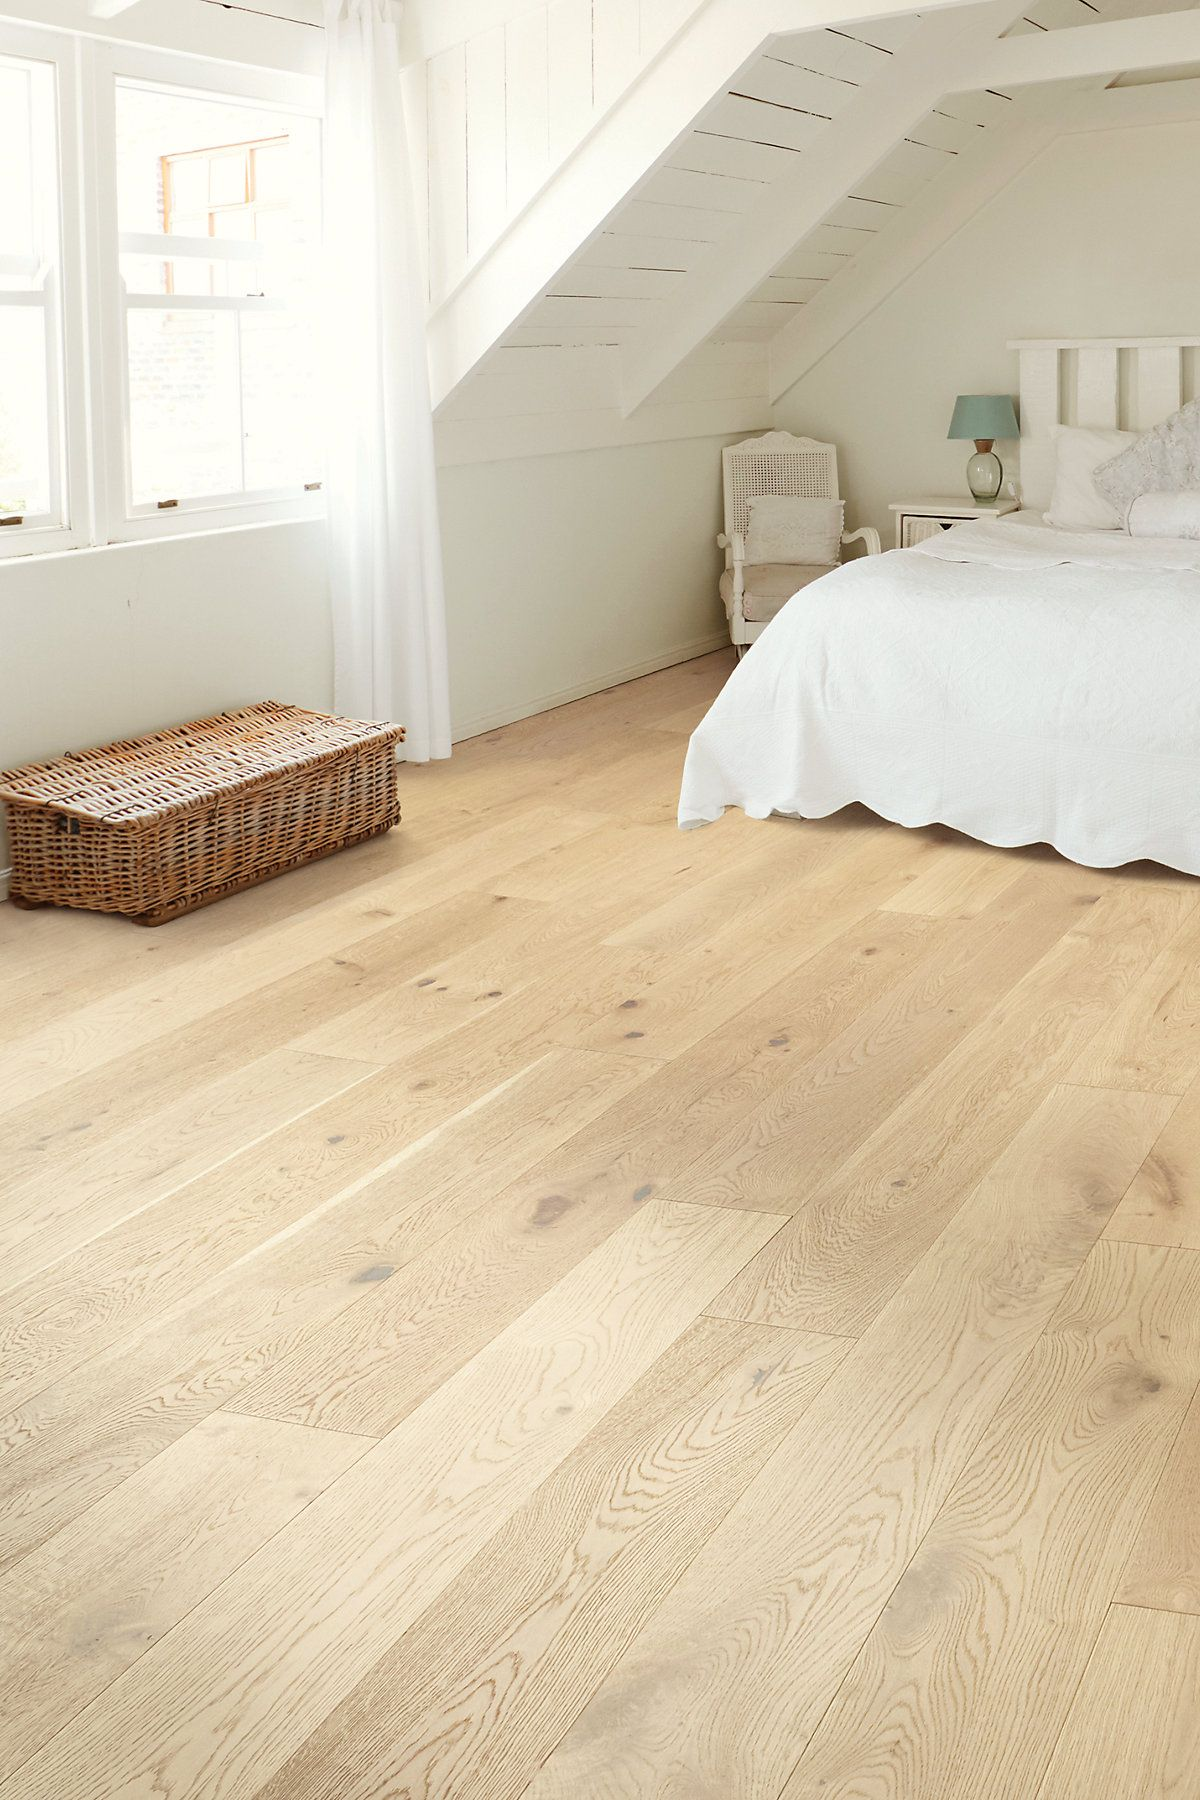 Our Shaw Floors The Gallery CASTLEWOOD OAK | DYNASTY is hardwood flooring made to make your life easier. Click to learn more and get a sample.